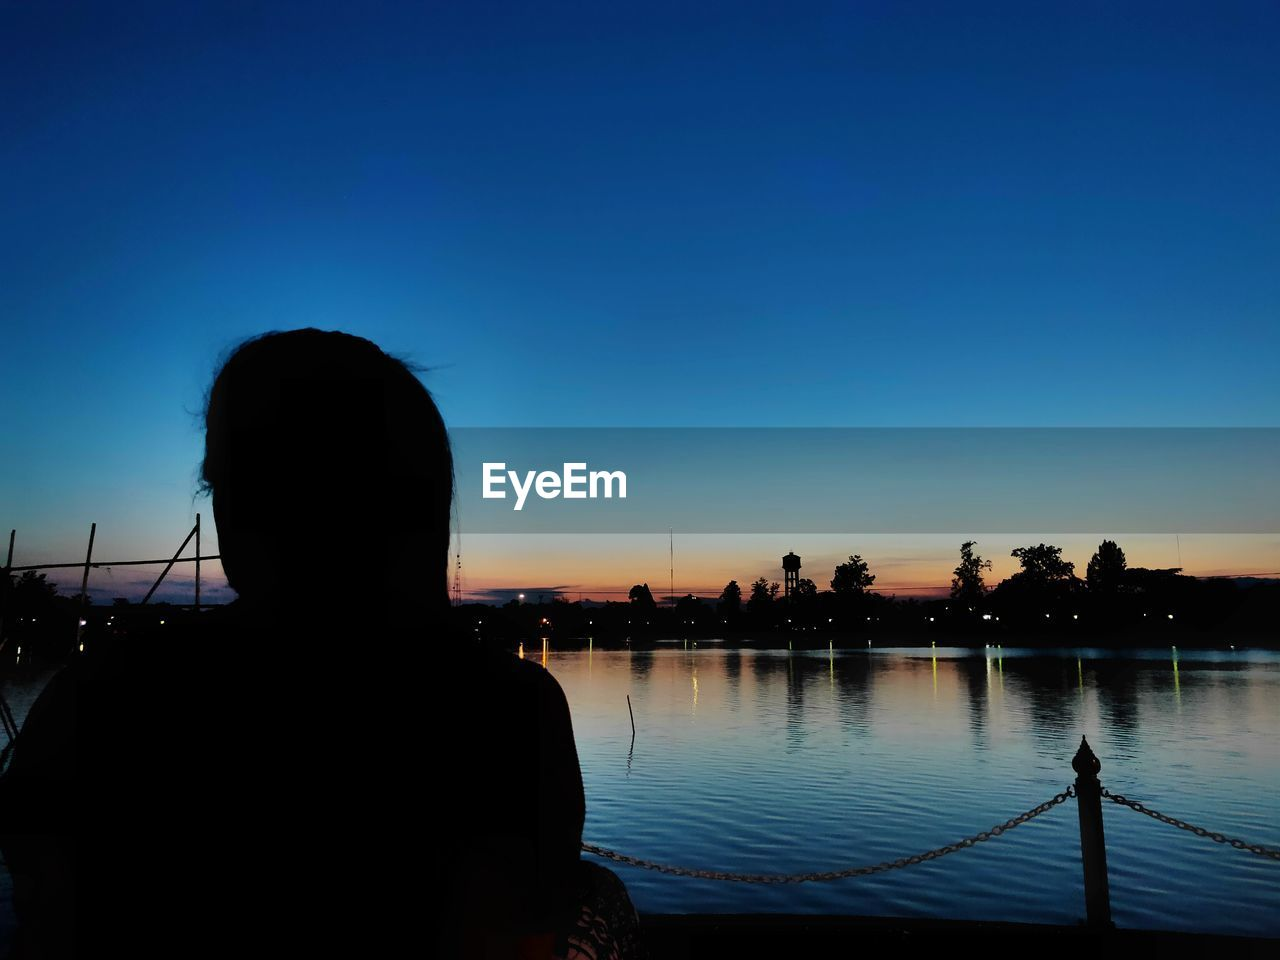 sky, silhouette, real people, one person, lifestyles, leisure activity, rear view, water, clear sky, men, nature, sunset, headshot, portrait, blue, copy space, architecture, built structure, outdoors, looking at view